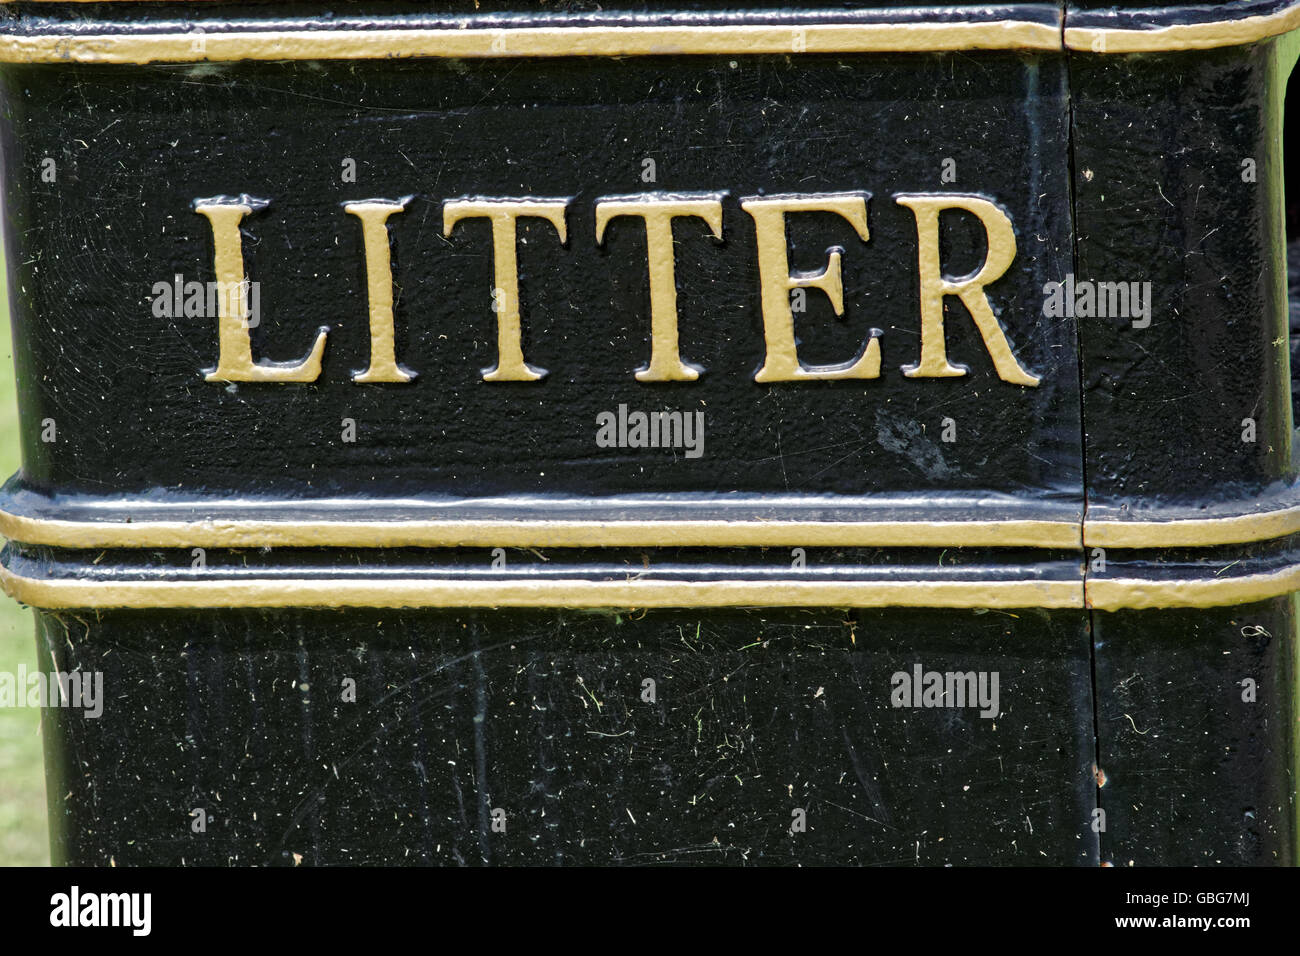 black  cast-iron litter bin with gold lettering - Stock Image